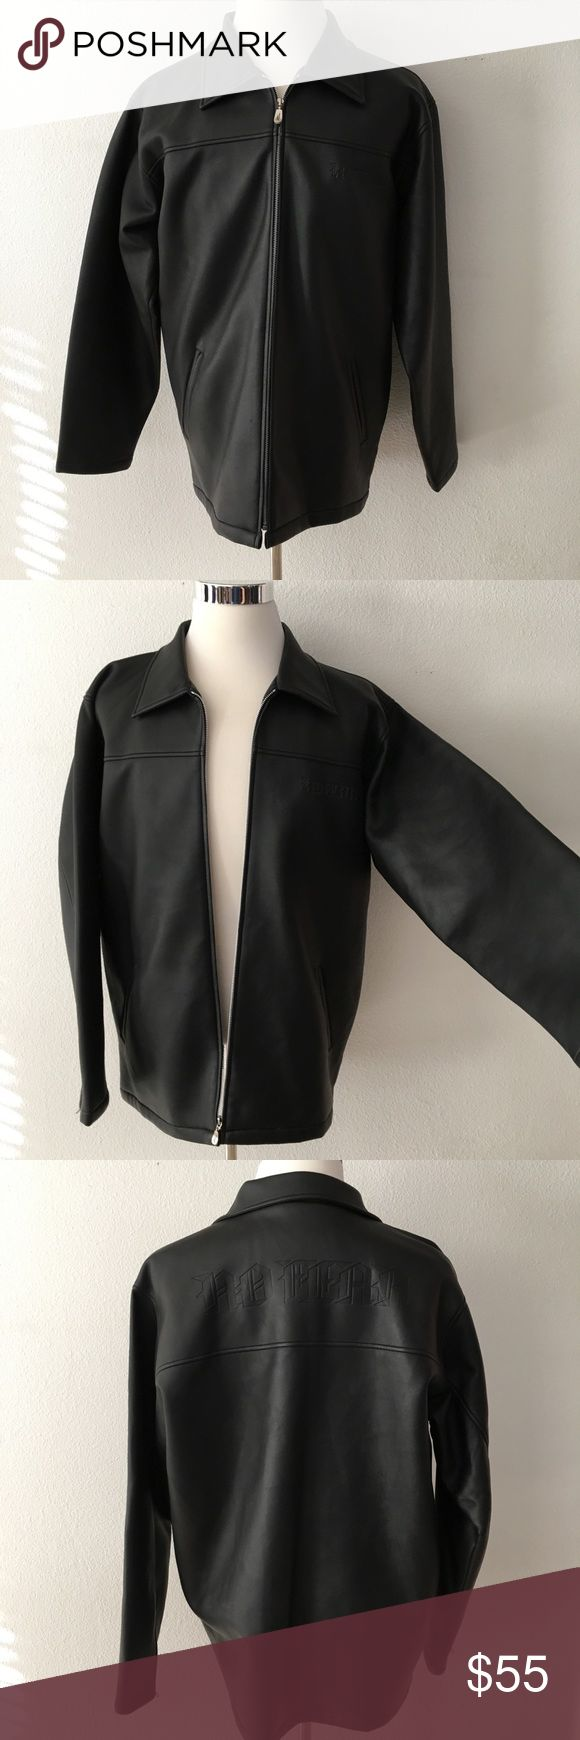 🆕 No Fear | Black Faux Leather Moto Jacket Black faux leather jacket has front zipper closure in addition to bottom of both sleeves. Two outside zipper pockets & one inside breast pocket also has a zipper closure. In great preloved condition with a couple of very small spots as shown in 8th photo. Not noticeable when wearing. No Fear Jackets & Coats